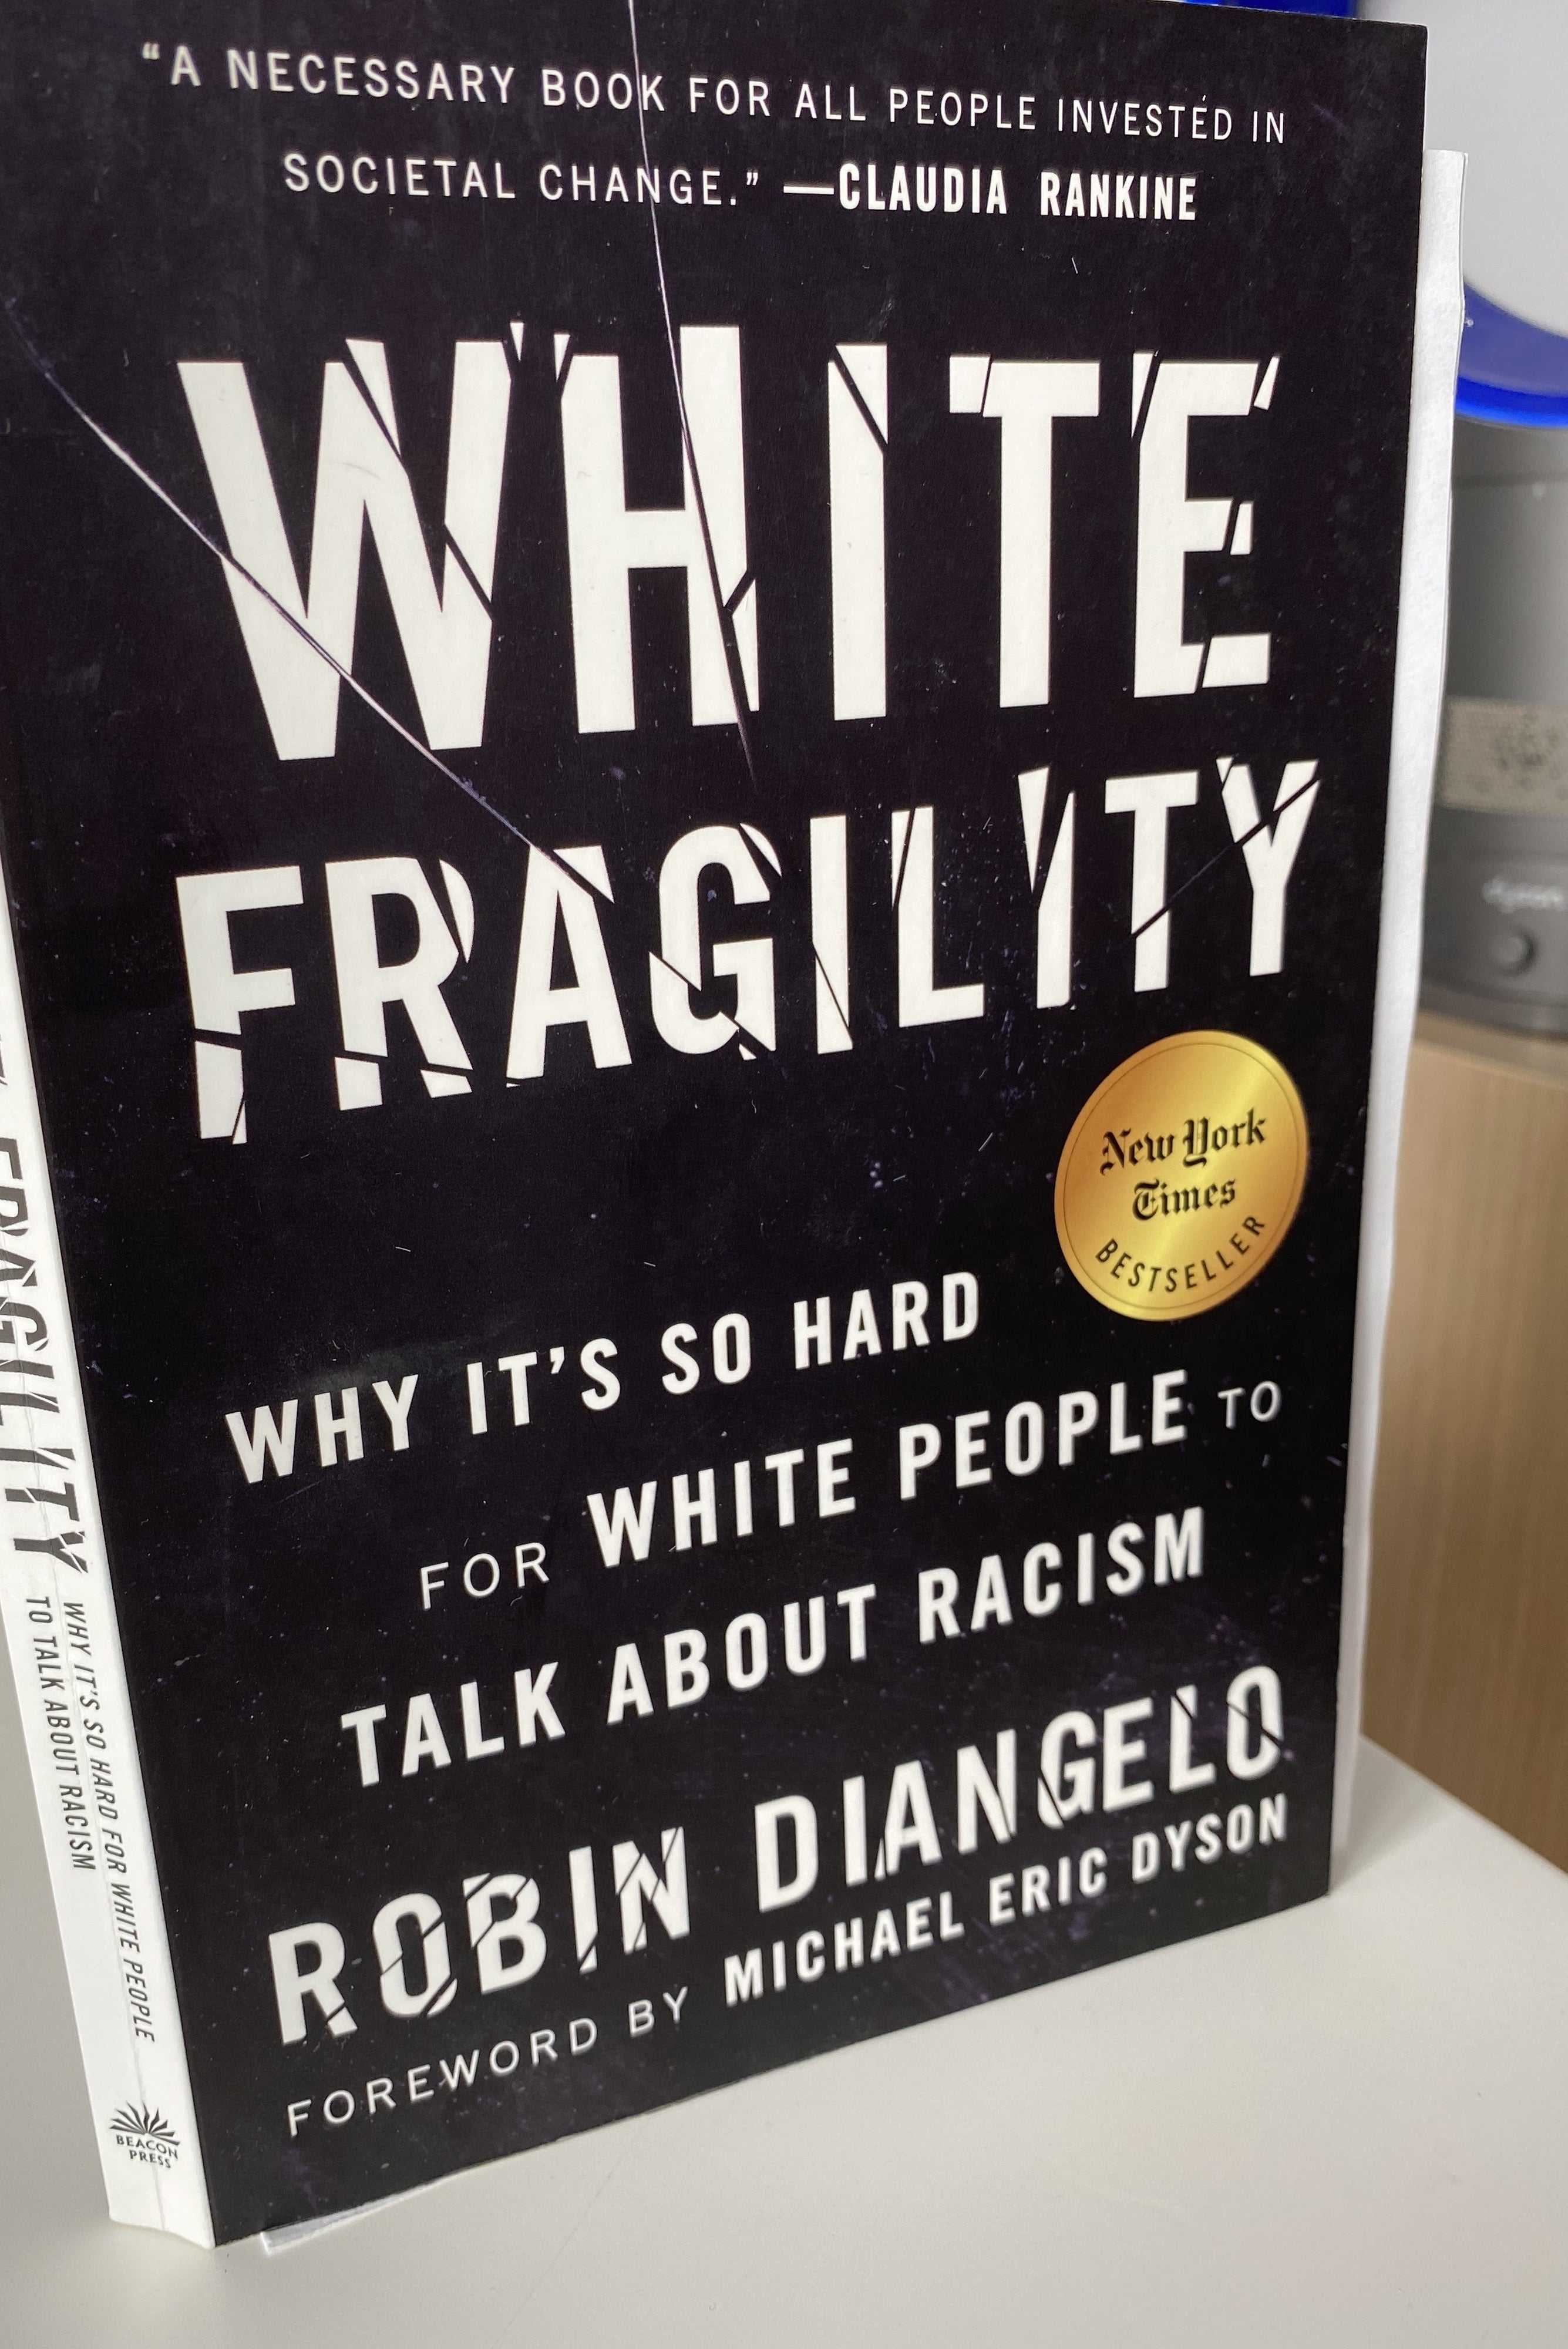 """Book cover shows title with the subtitle: """"Why it's so hard for white people to talk about racism"""""""